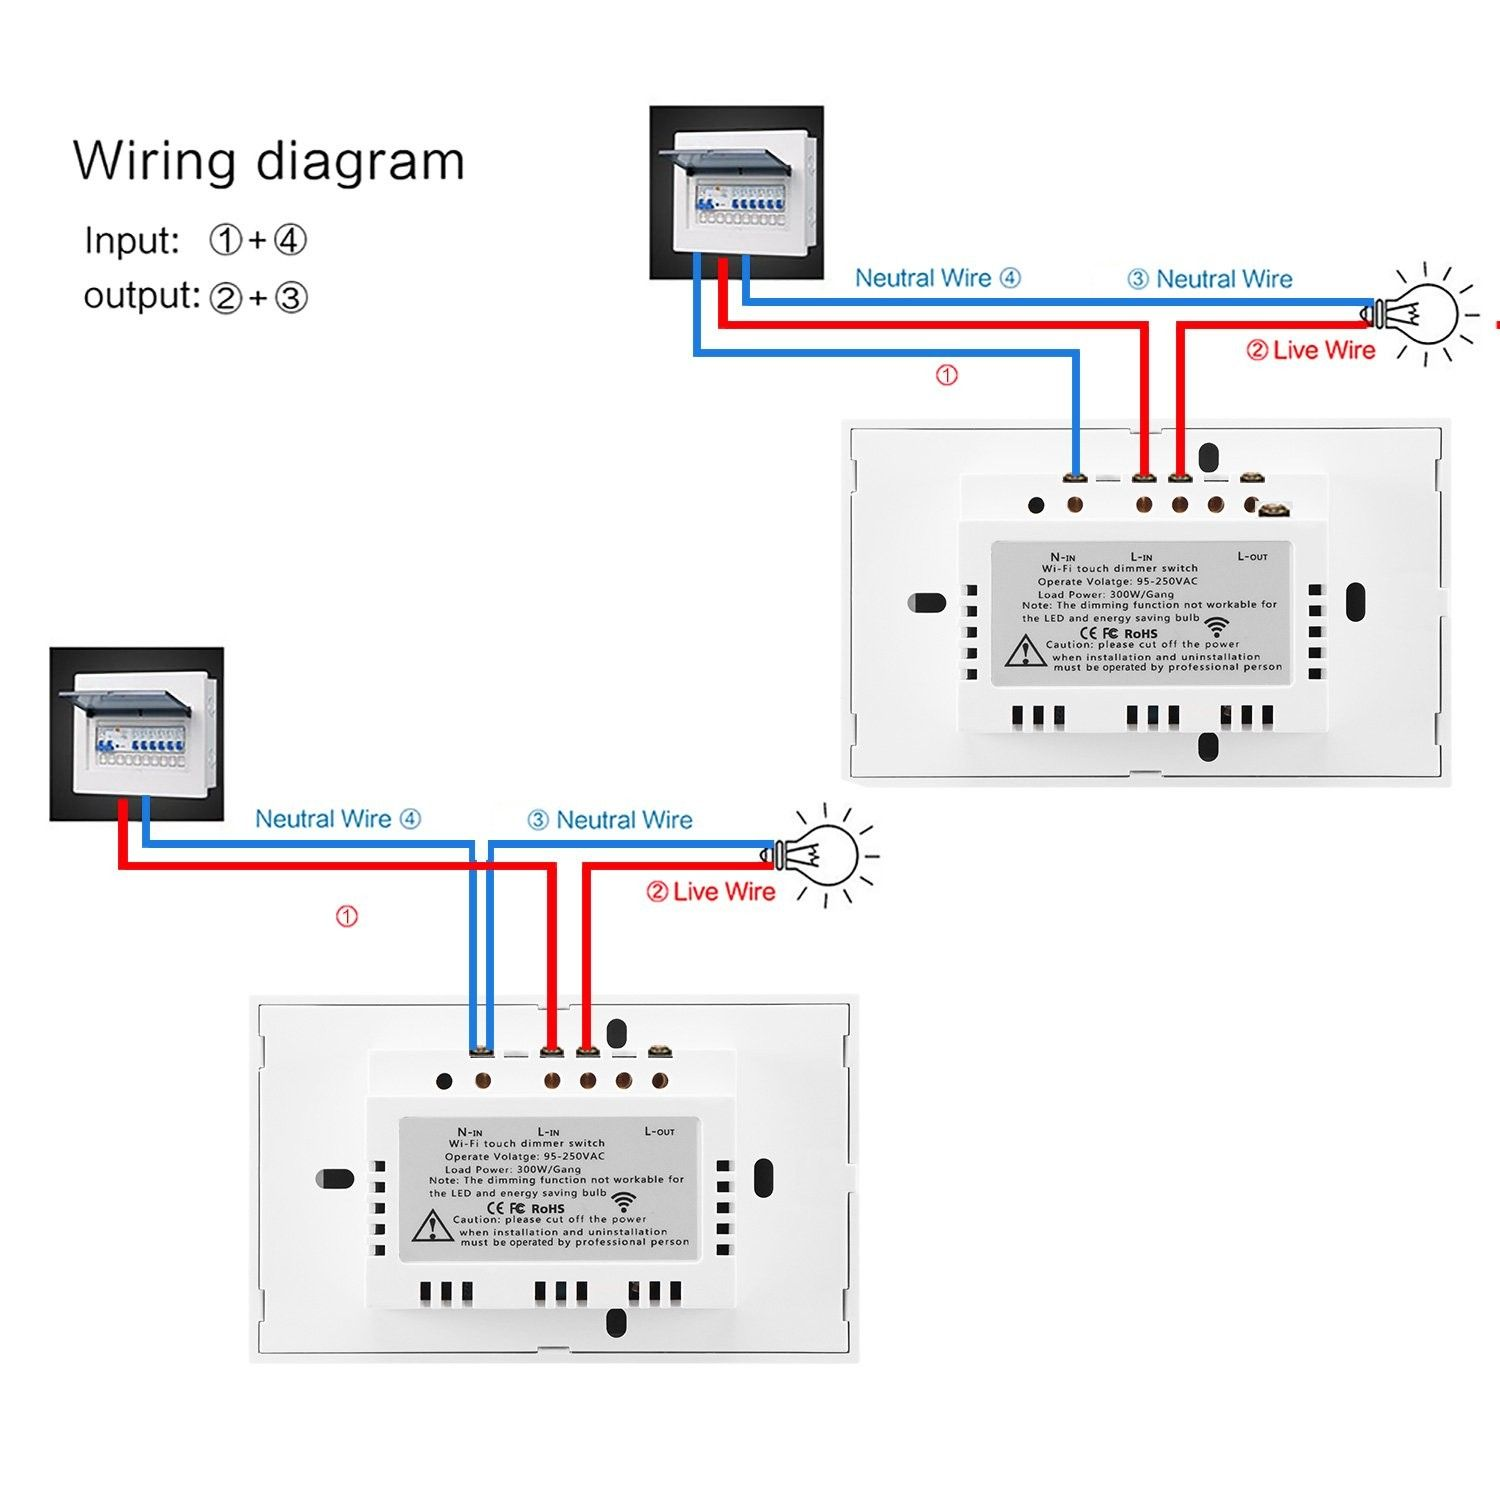 Unique Wiring Diagram For A Leviton Dimmer Switch Diagram Diagramtemplate Diagramsample